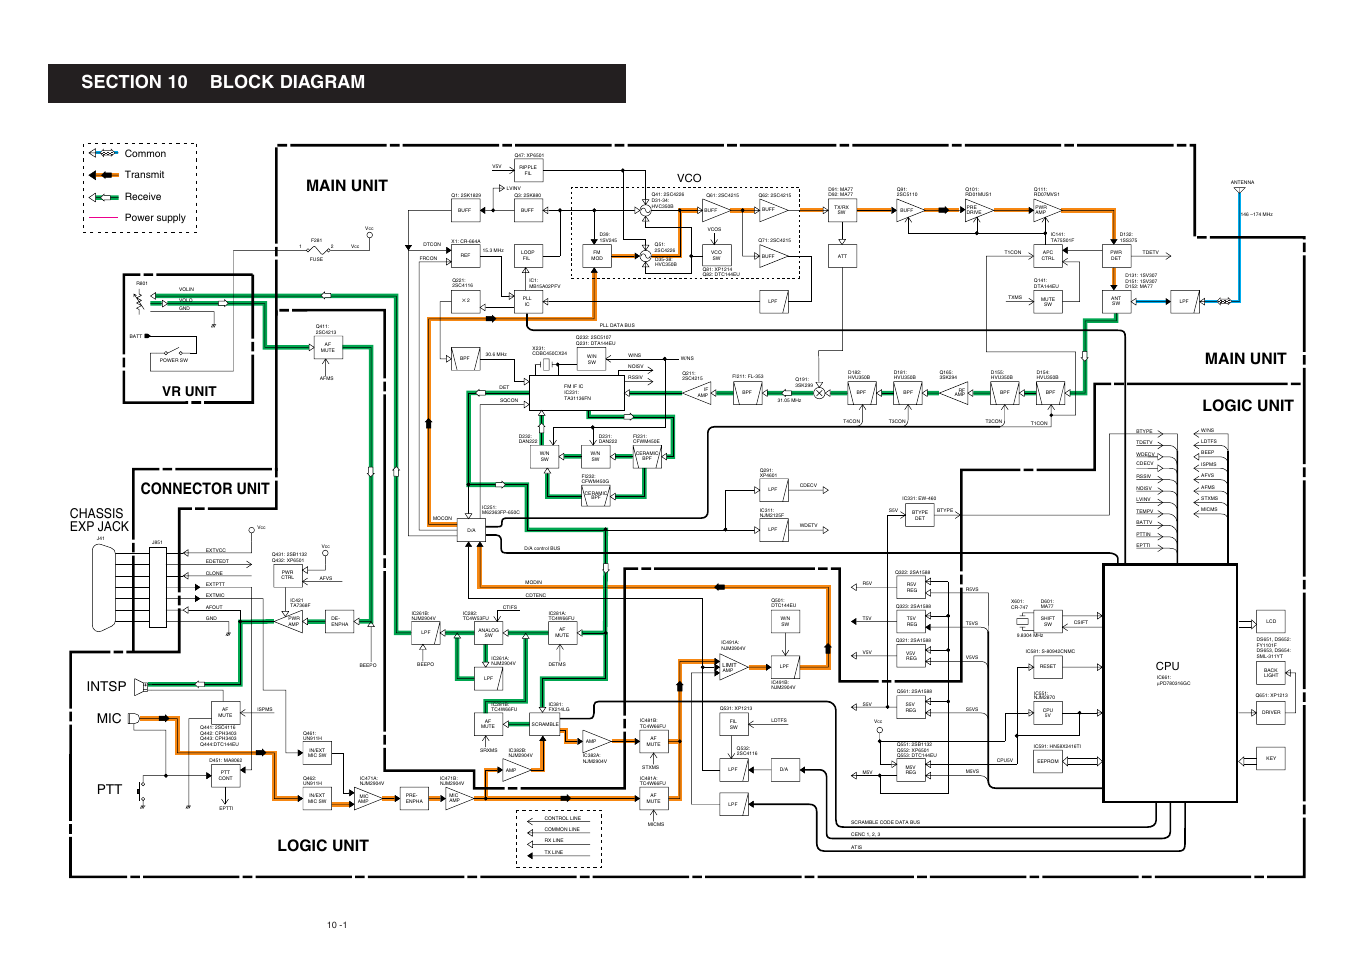 Block Diagram Logic Unit Logic Unit Main Unit Main Unit